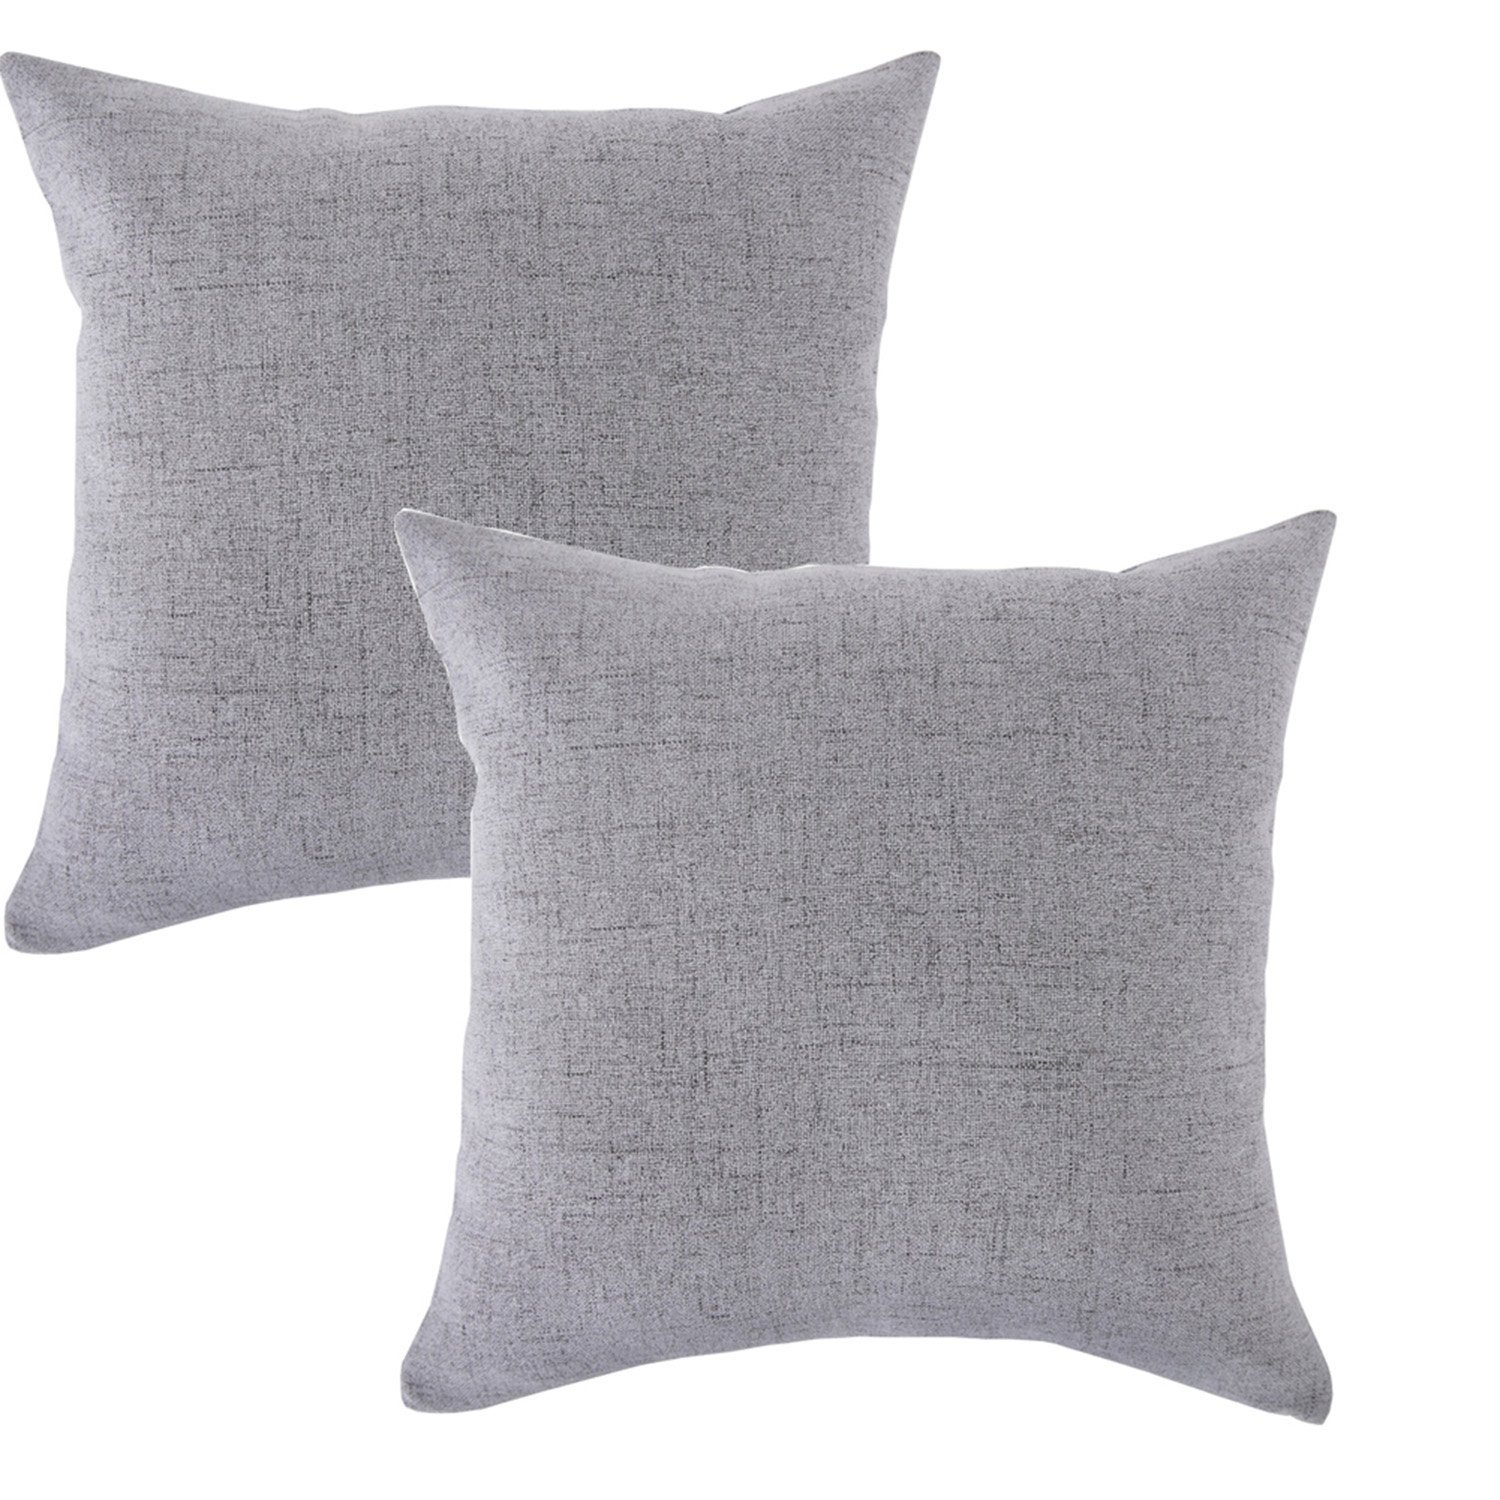 Linen Pillow Covers 20 x 20 Inch Sets of 2 Decorative